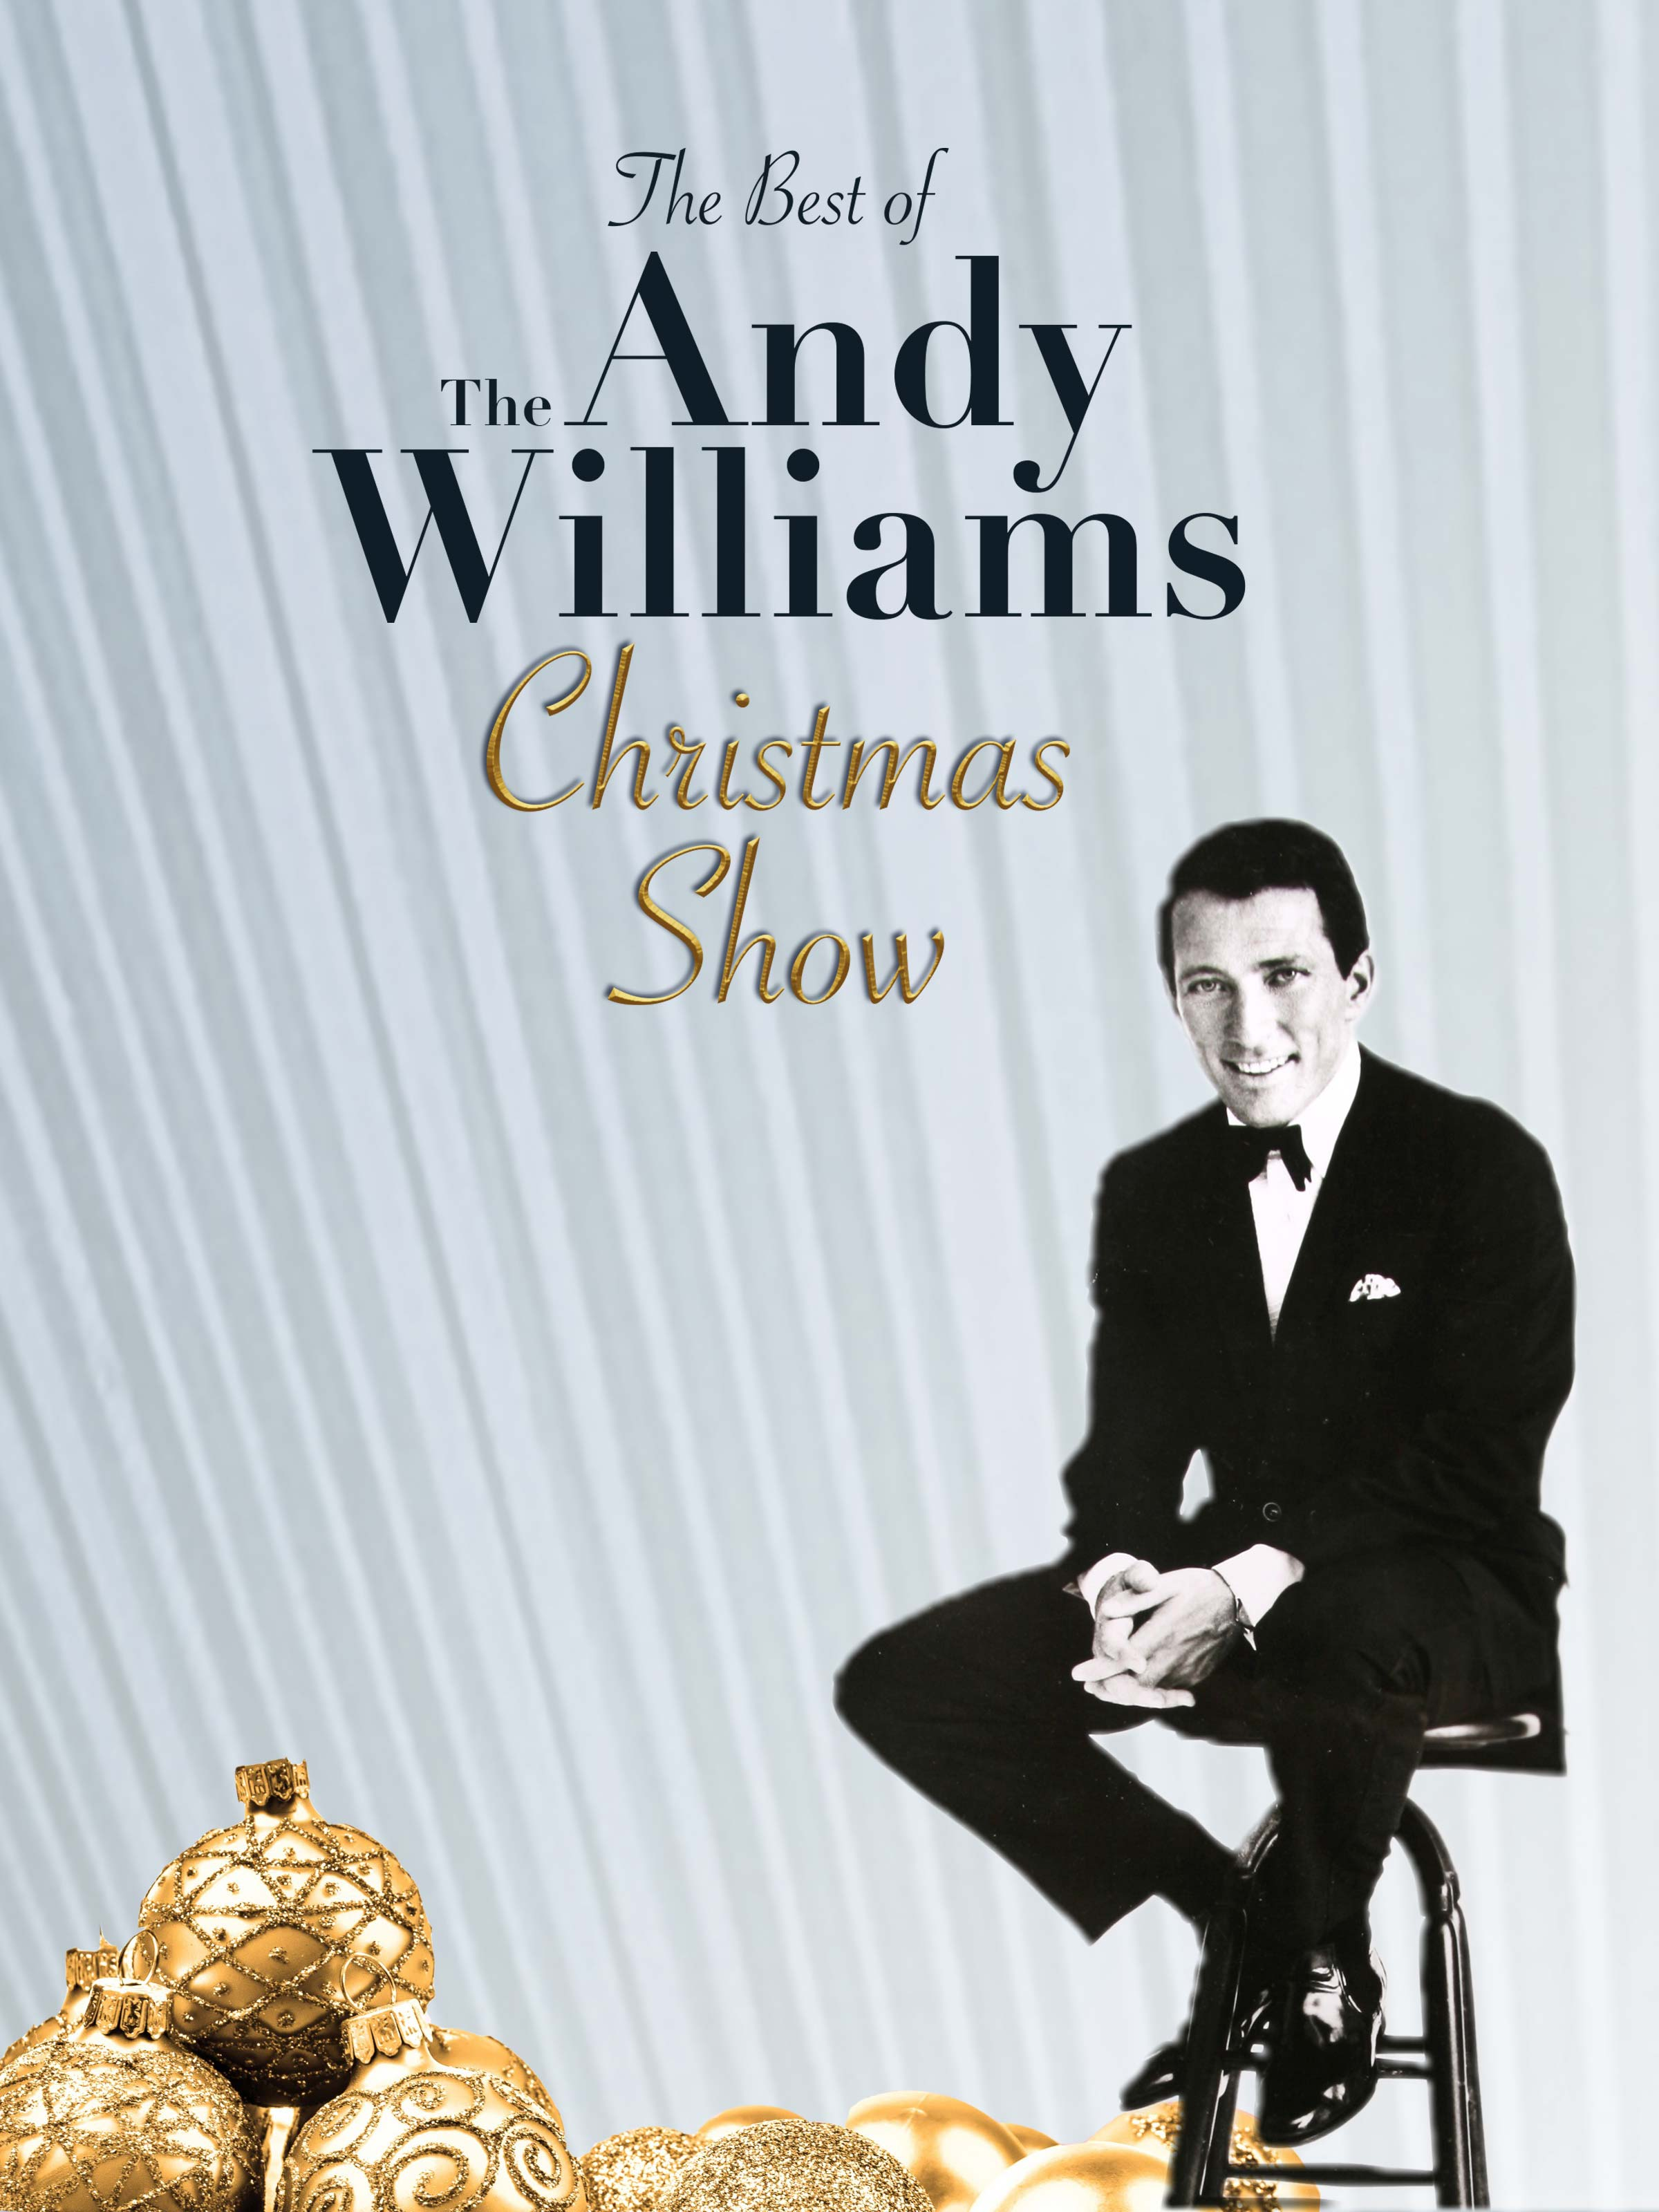 Andy Williams Christmas.Best Of The Andy Williams Christmas Show Pure Flix